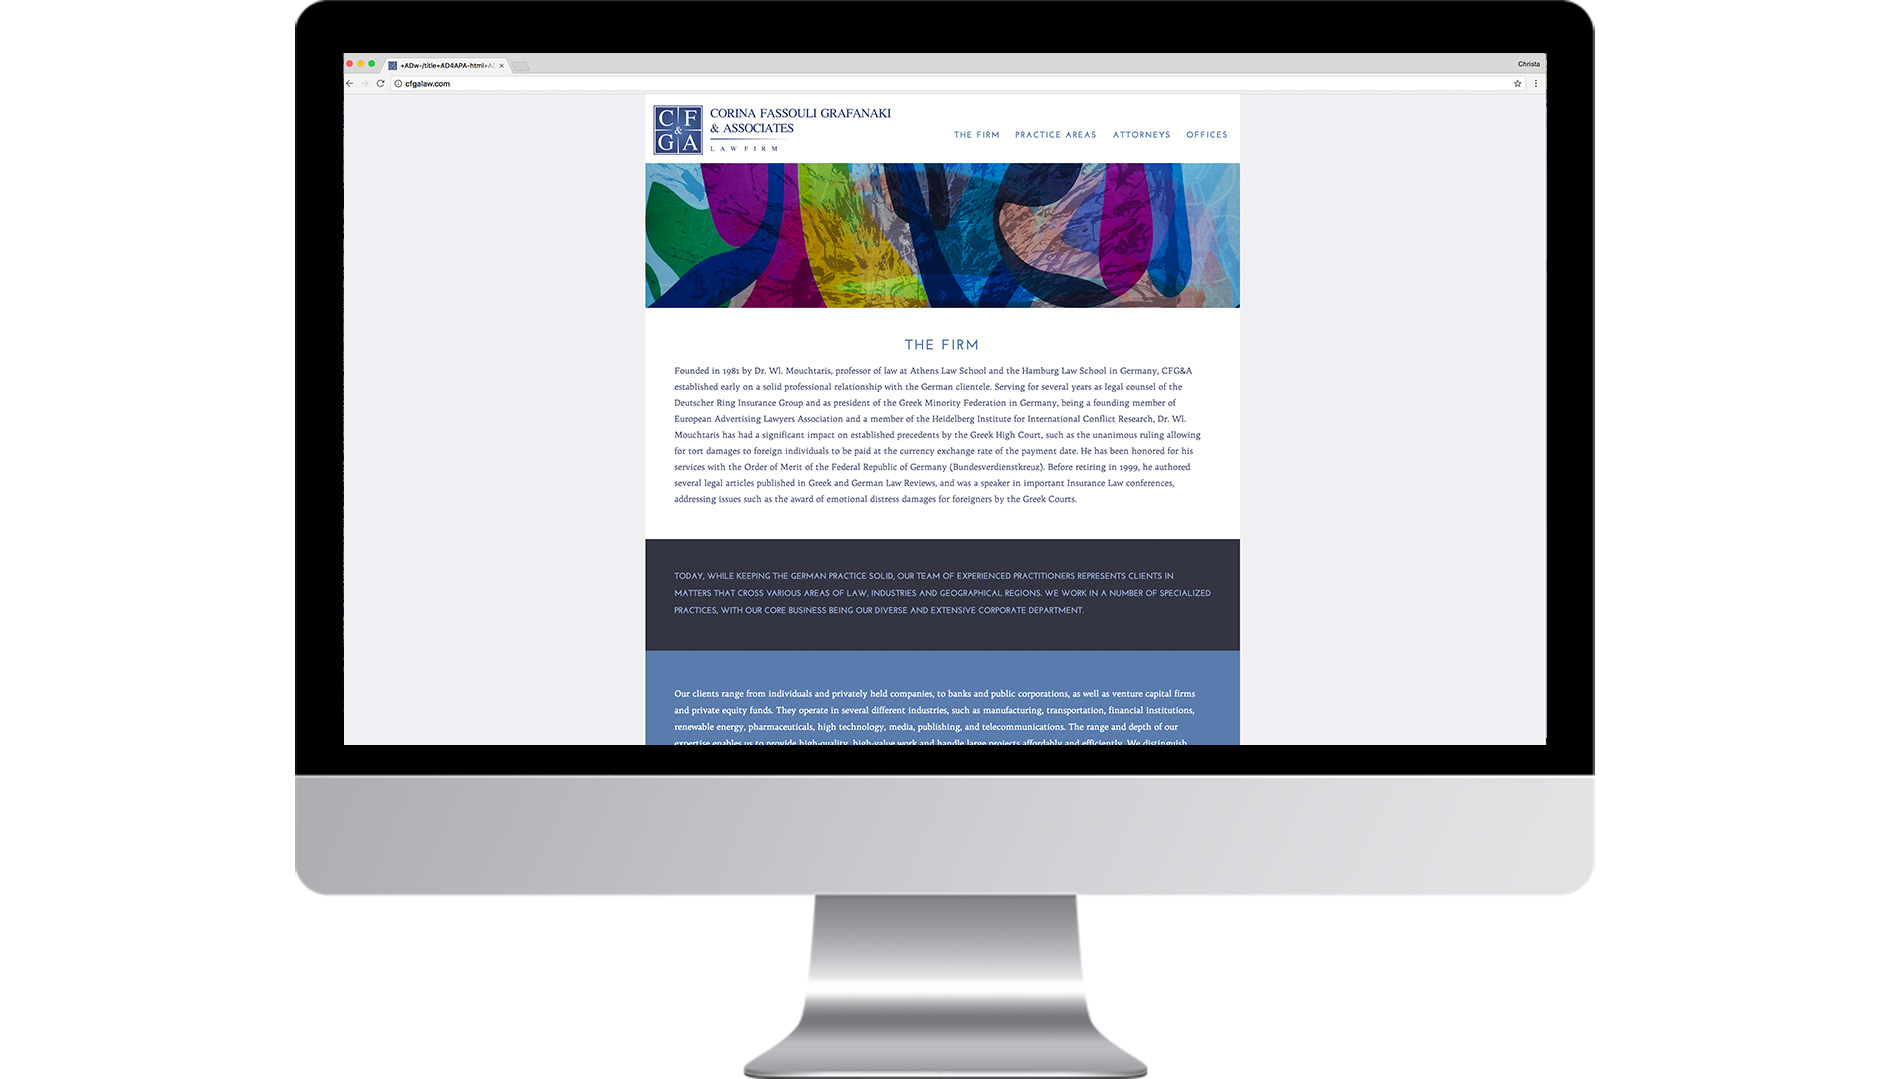 cfga lawfirm website design